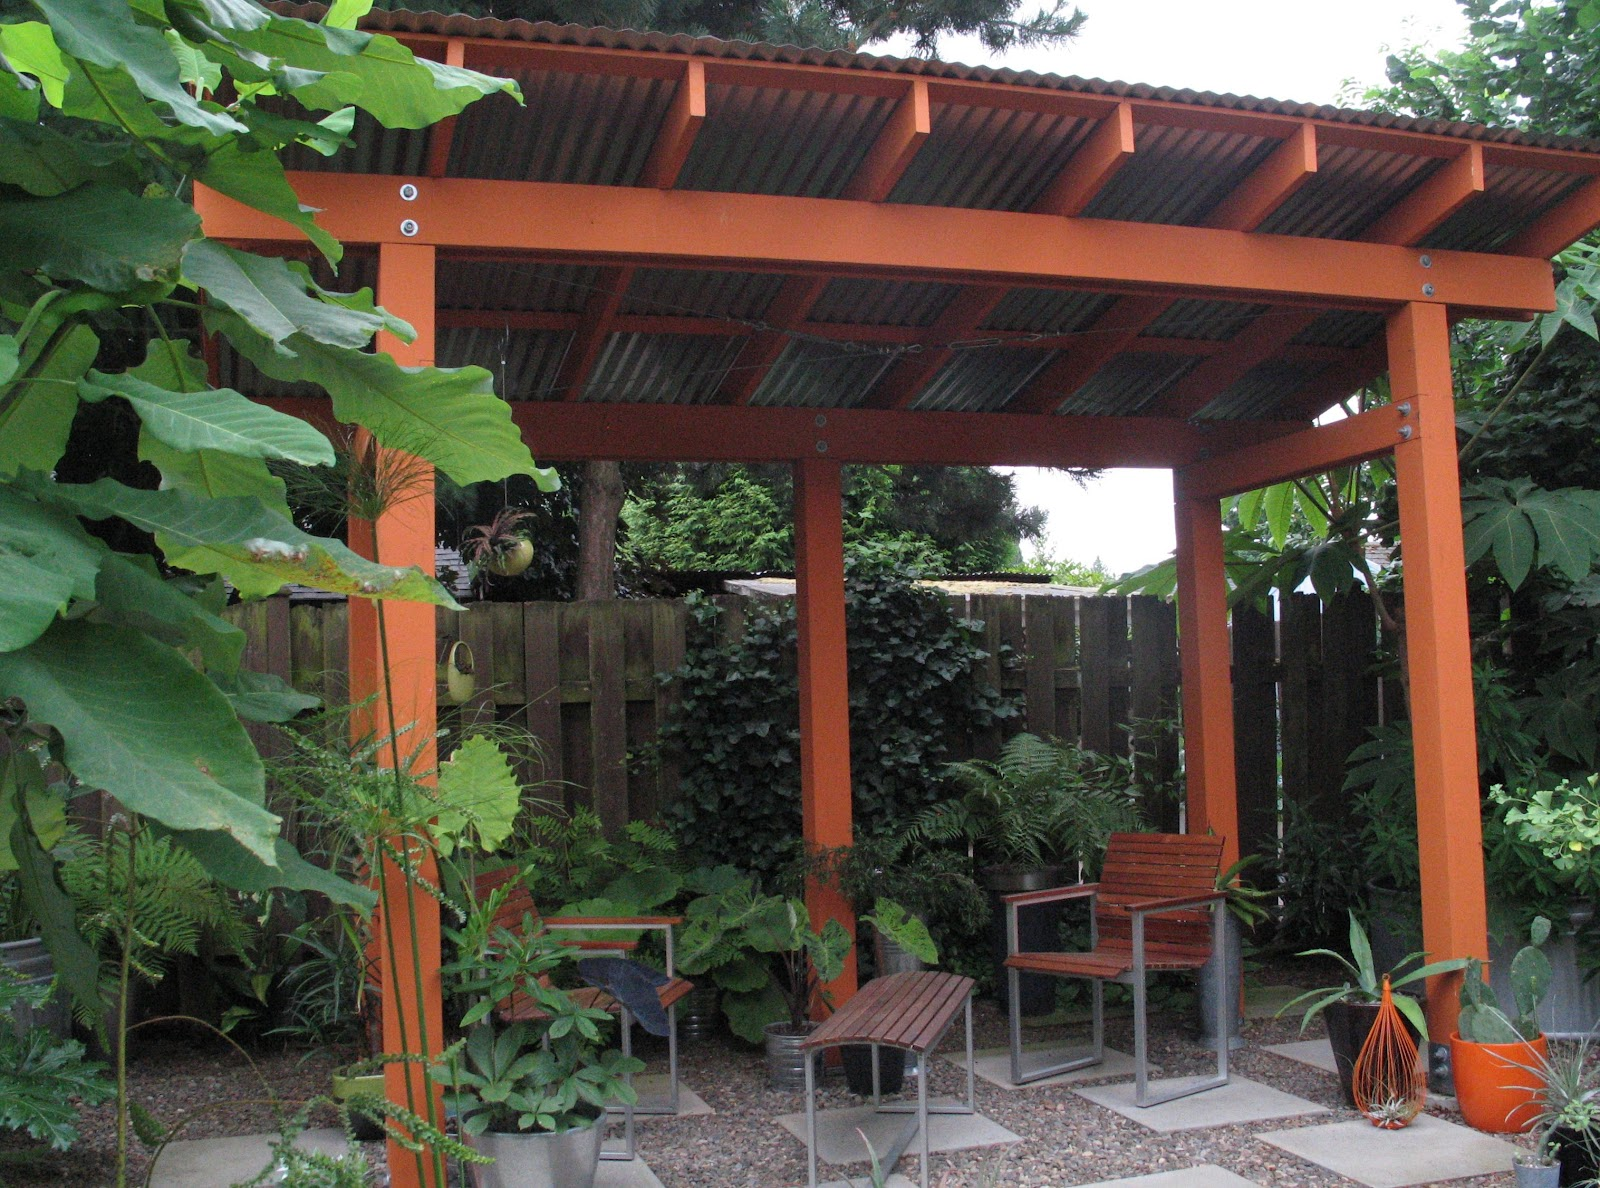 Outdoor bar ideas using roof metal - 17 Best Ideas About Aluminum Pergola On Pinterest Aluminum Gazebo Retractable Pergola And Sun Awnings